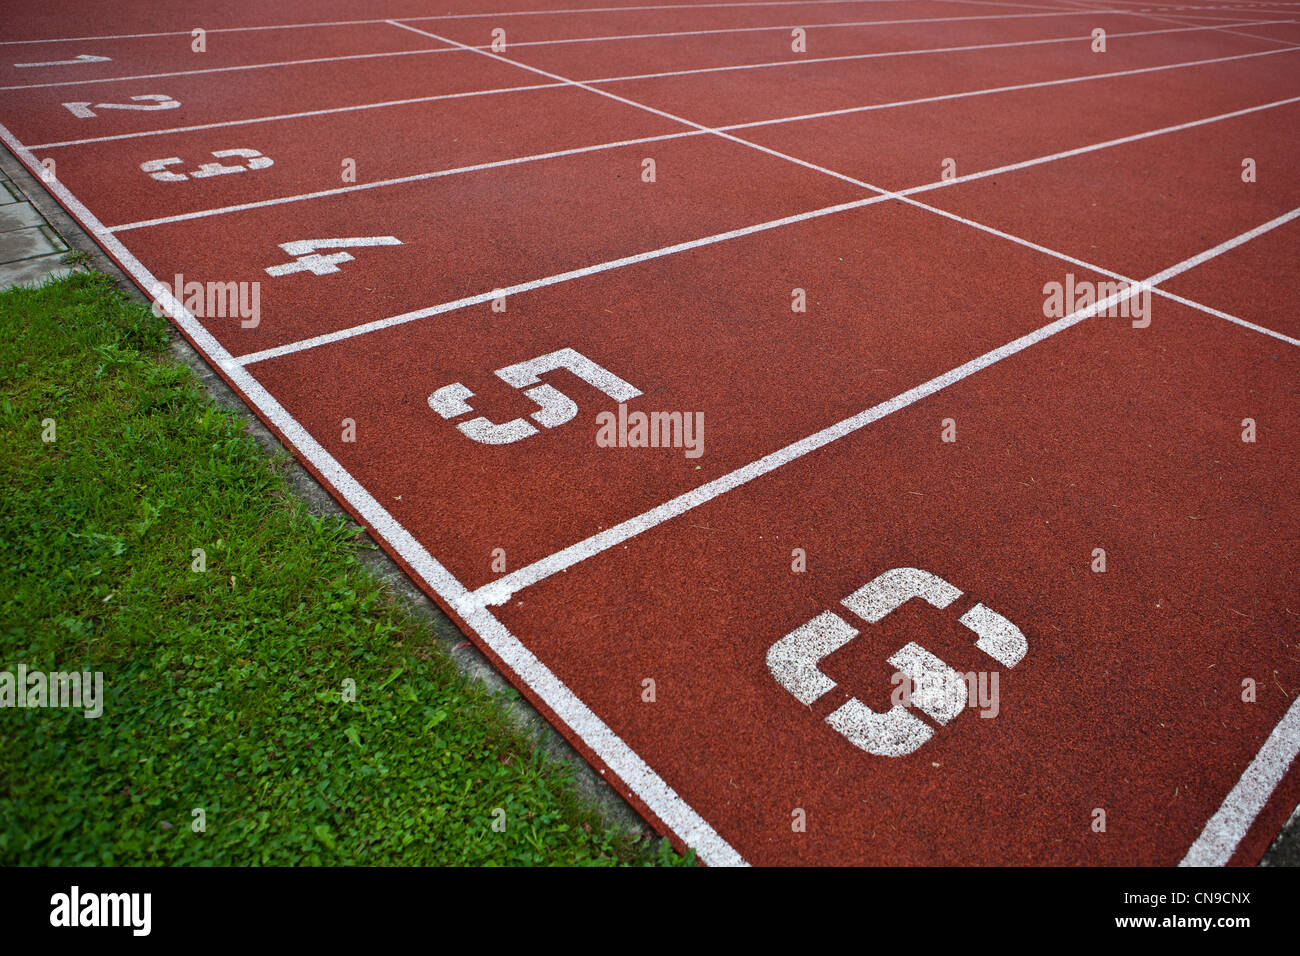 Sport grounds concept - Athletics Track Lane Numbers - Stock Image